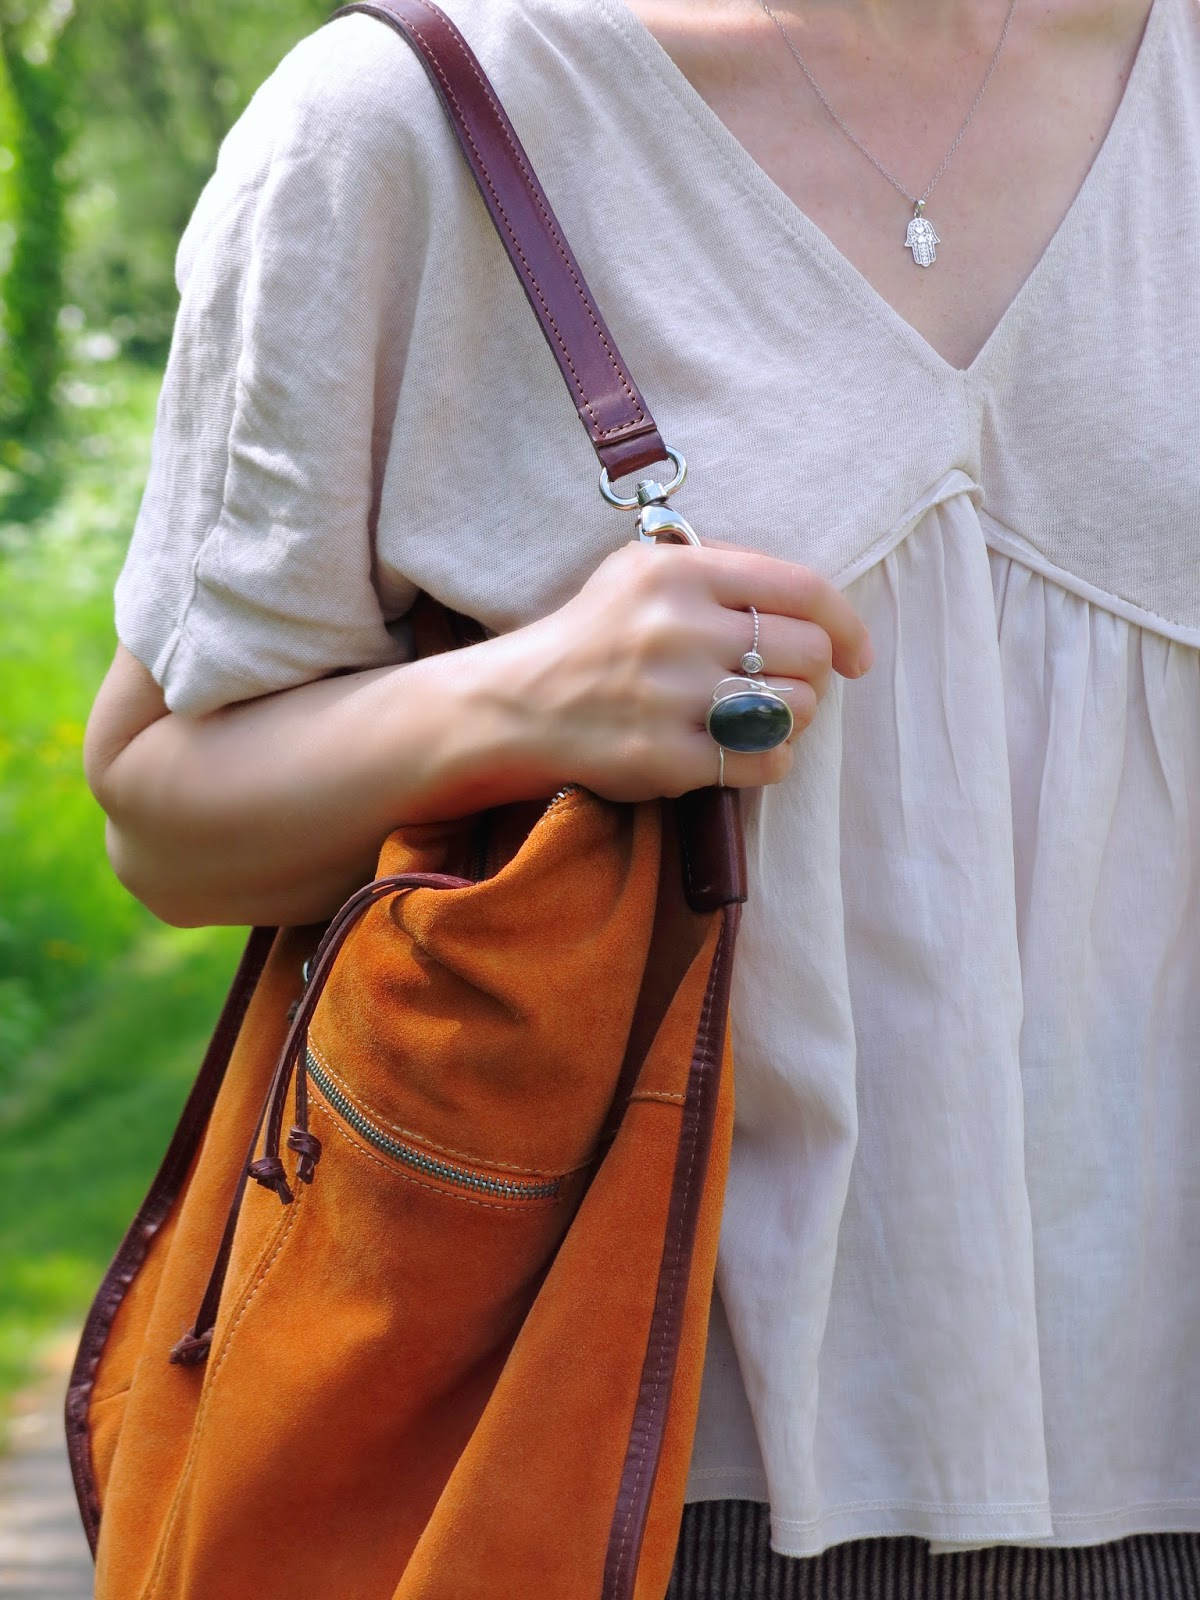 Zara top, orange bag, hamsa necklace, labradorite ring